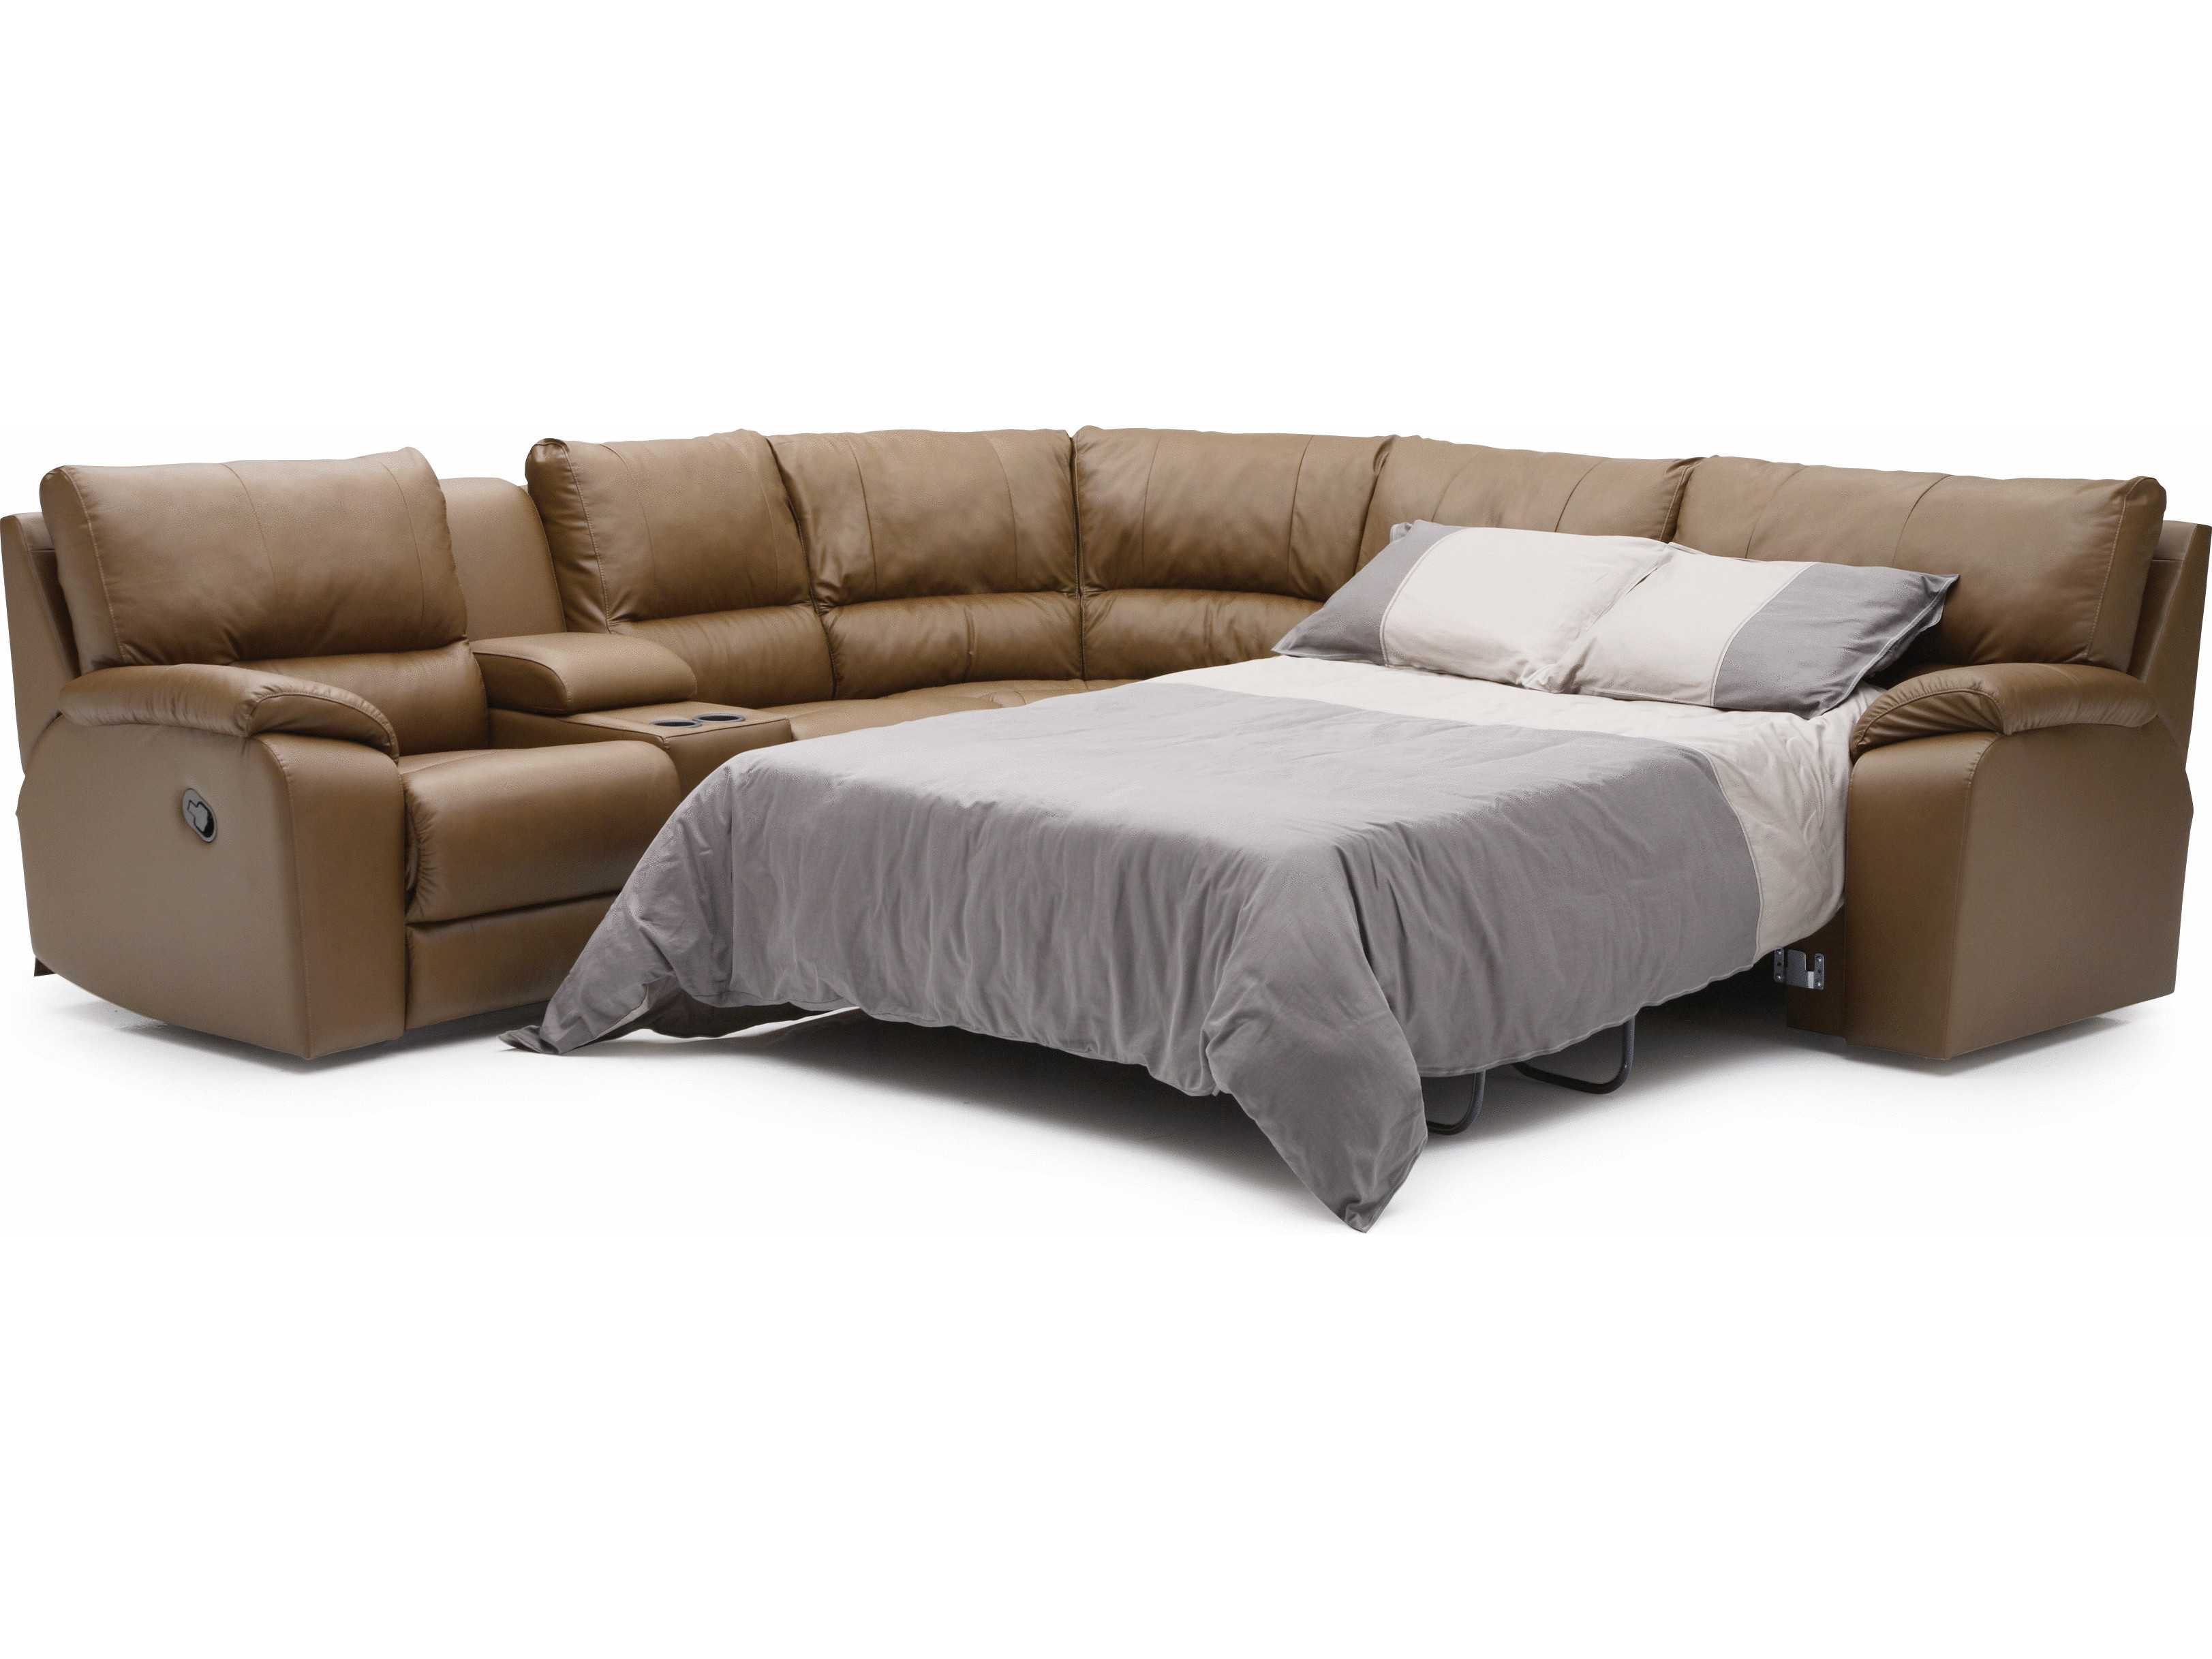 Palliser Shields Motion Home Theater Sectional Sofa